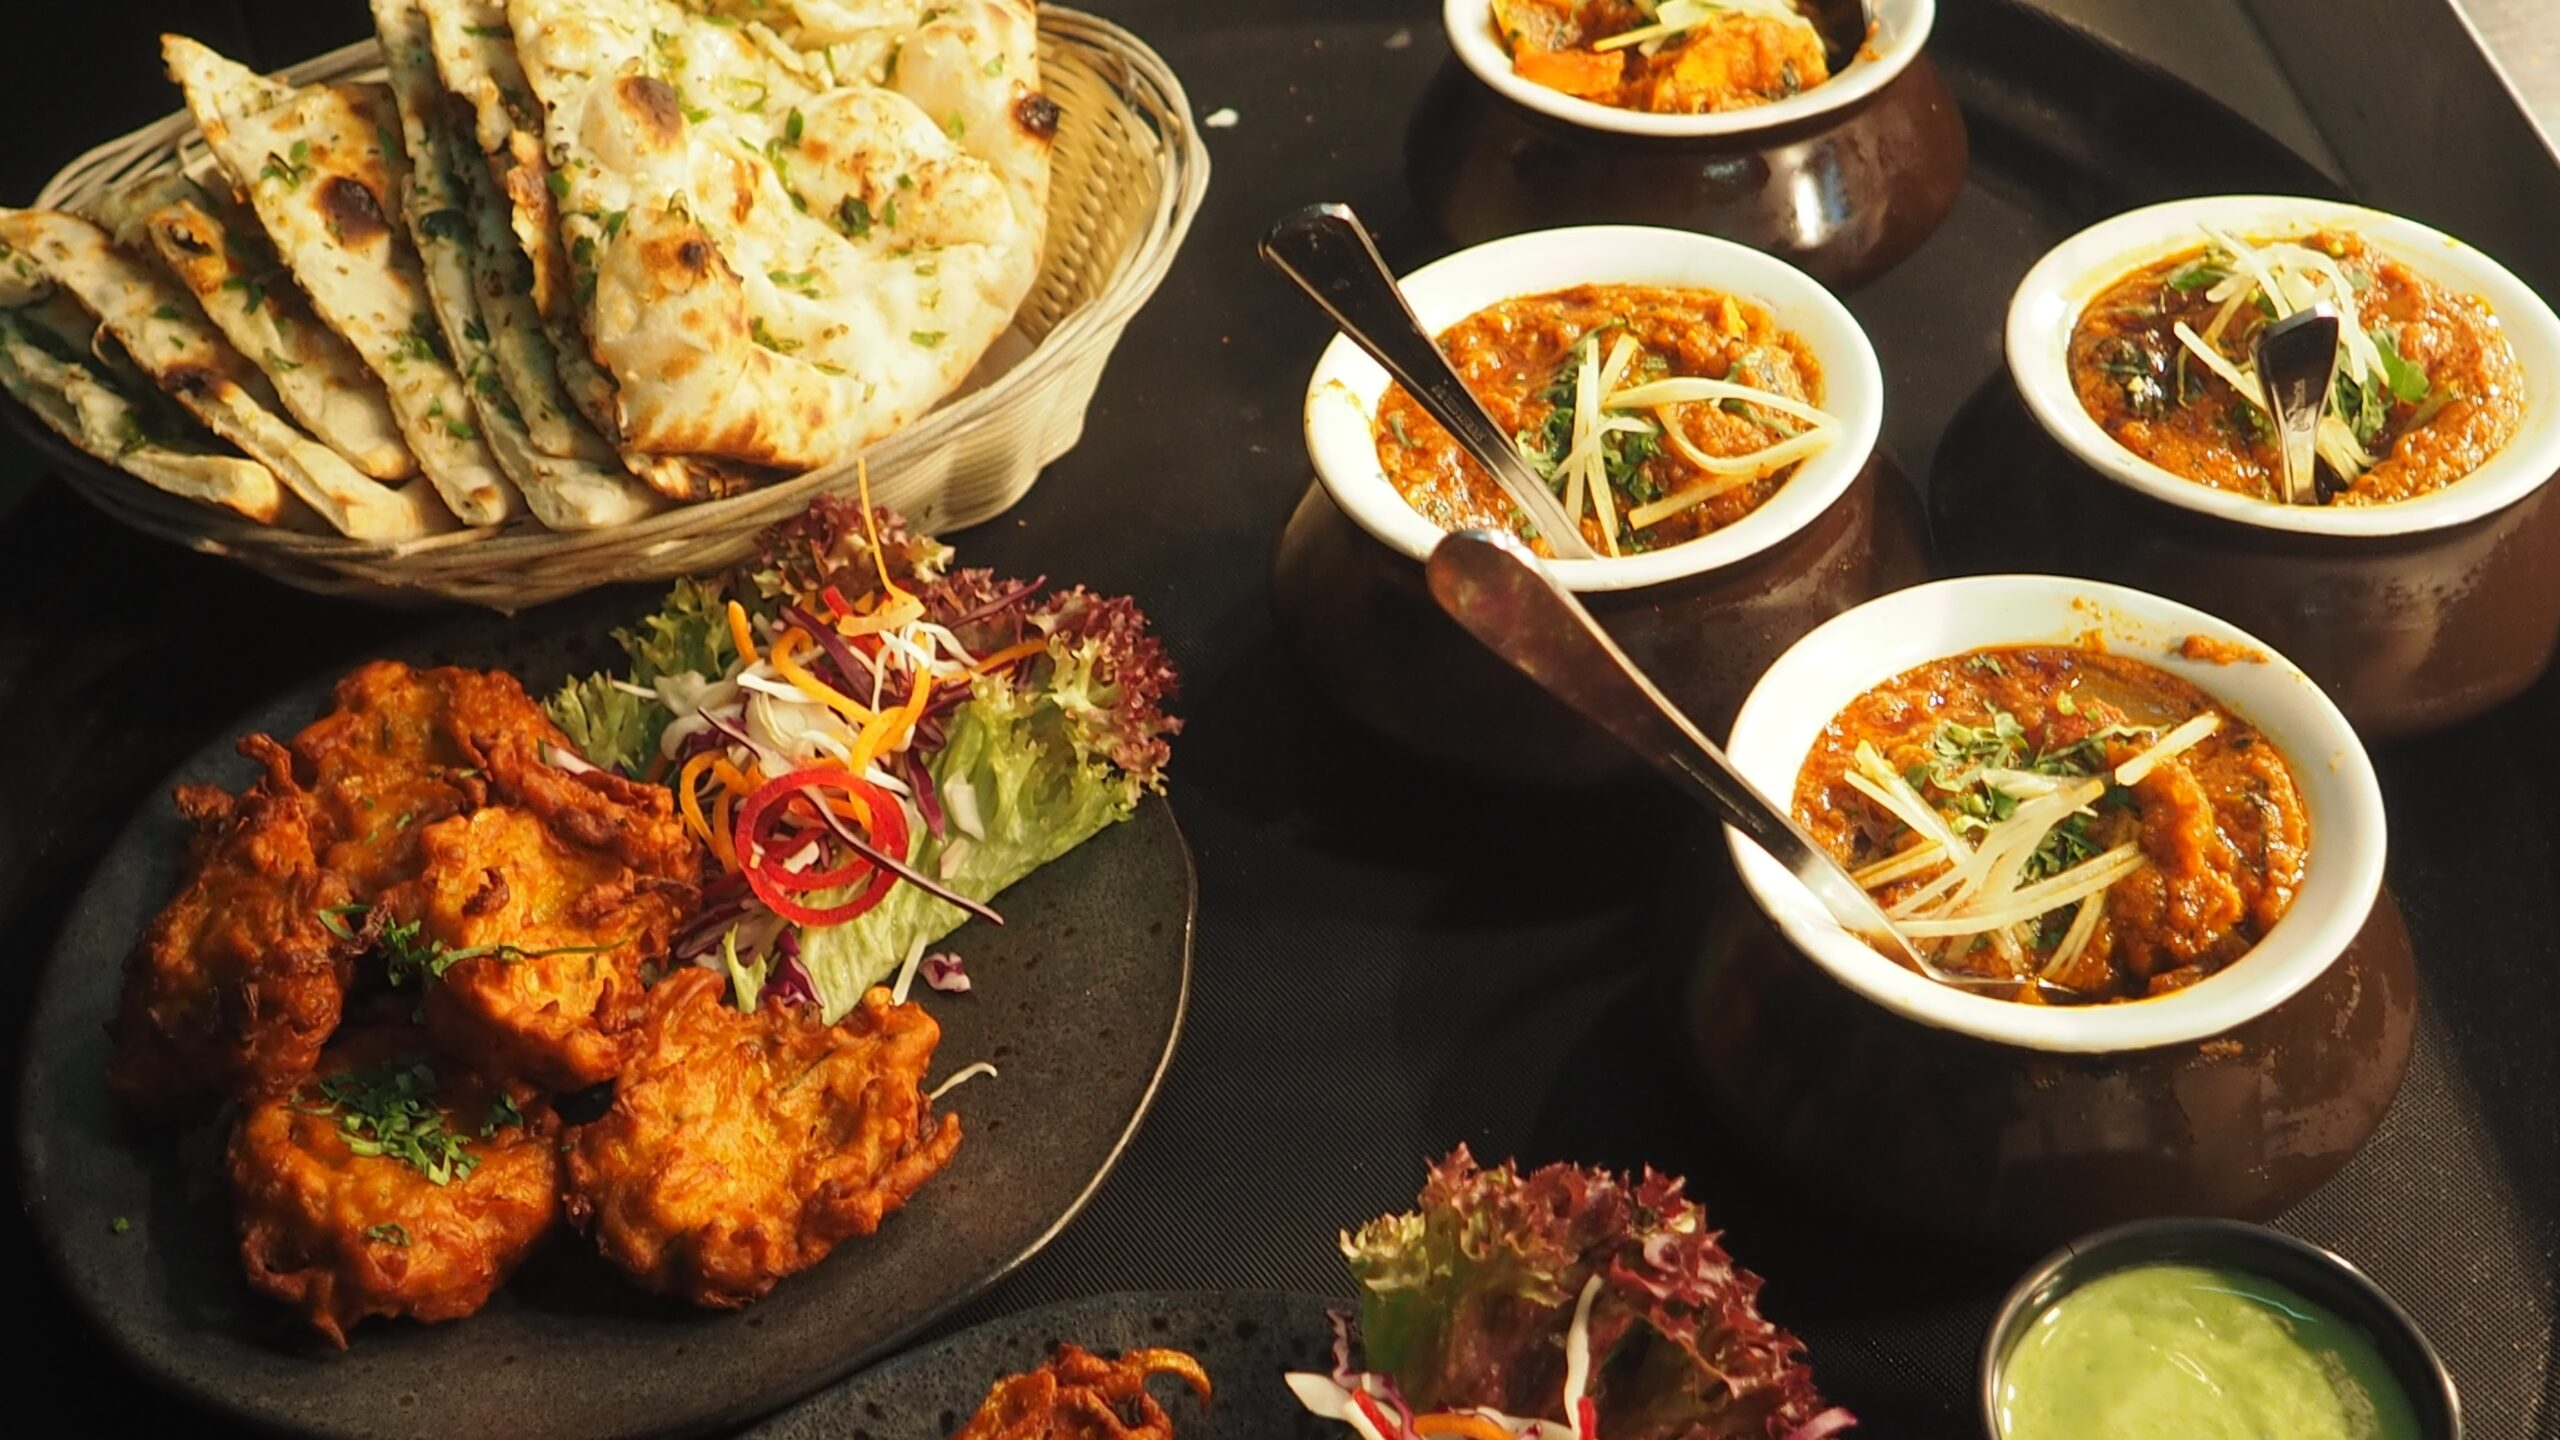 Bengal Spice | Indian Restaurant & Takeaway in Welling